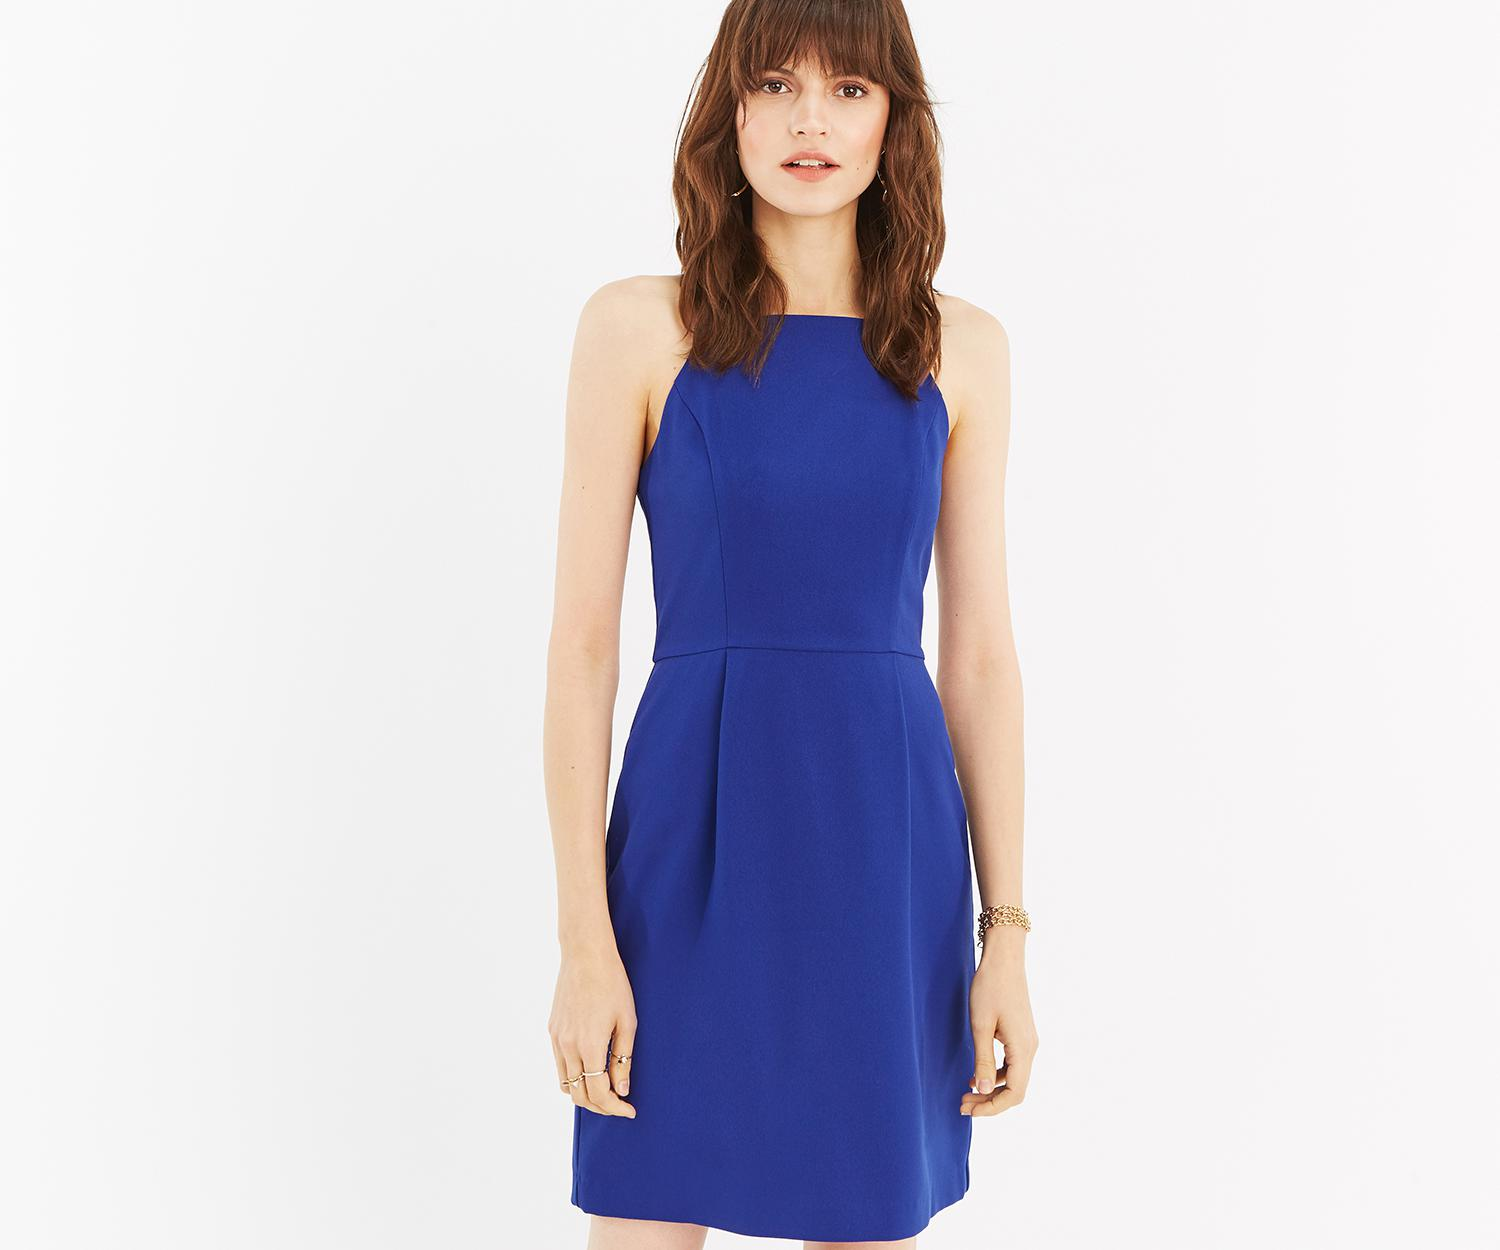 9c6f3cbe6501 Lyst - Oasis Lace Back Shift Dress in Blue